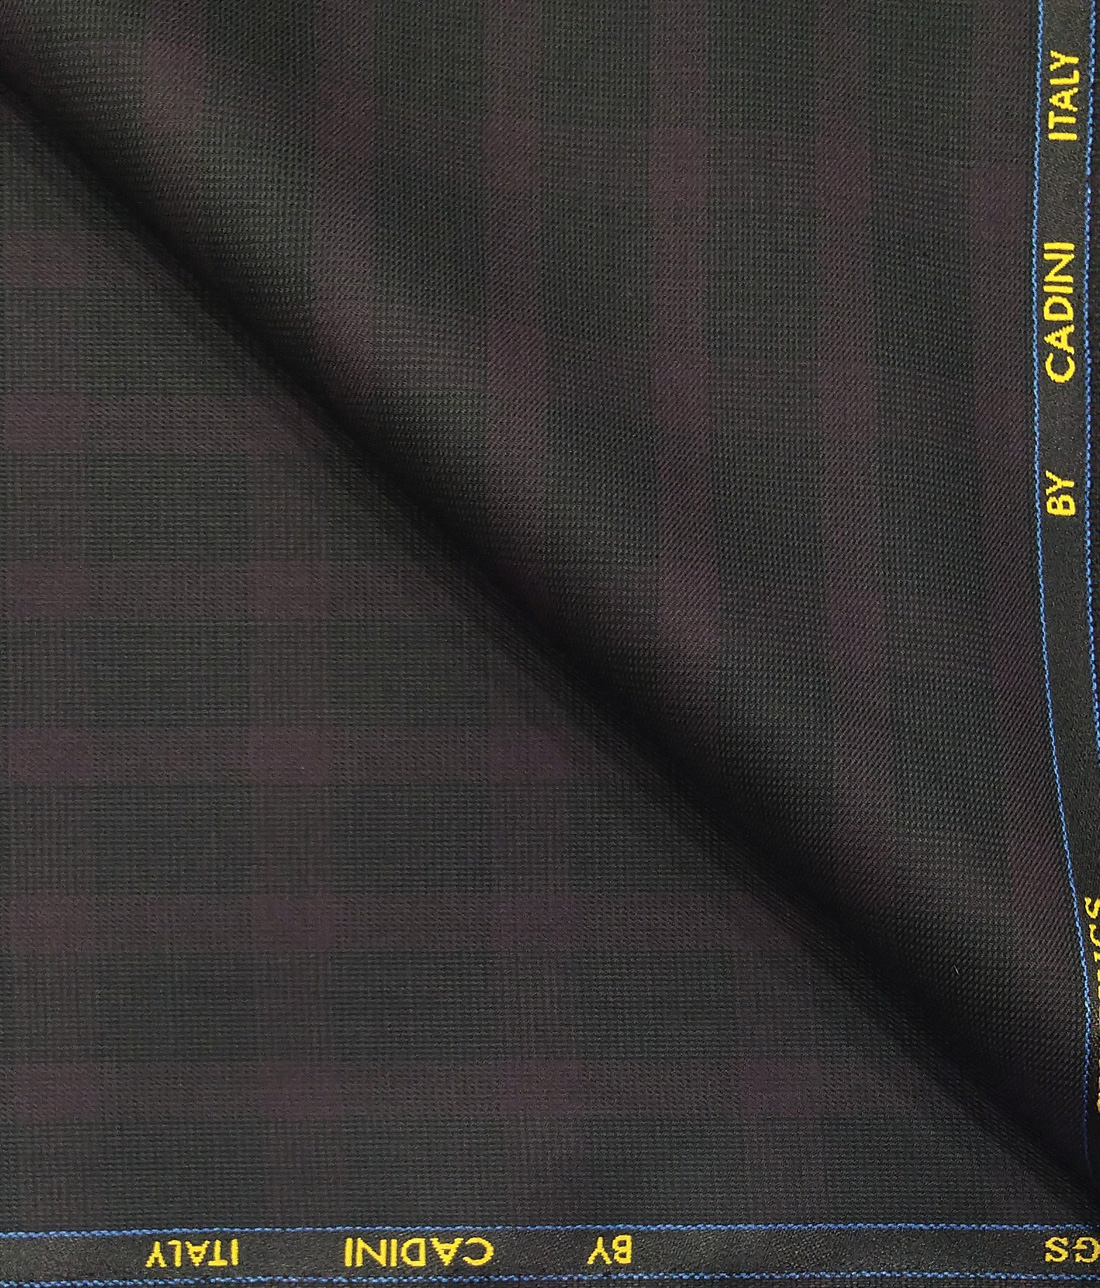 2be0774e8aa Cadini Italy Men's by Siyaram's Blackish Grey Terry Rayon Maroon Checks  Unstitched Suiting Fabric - 3.75